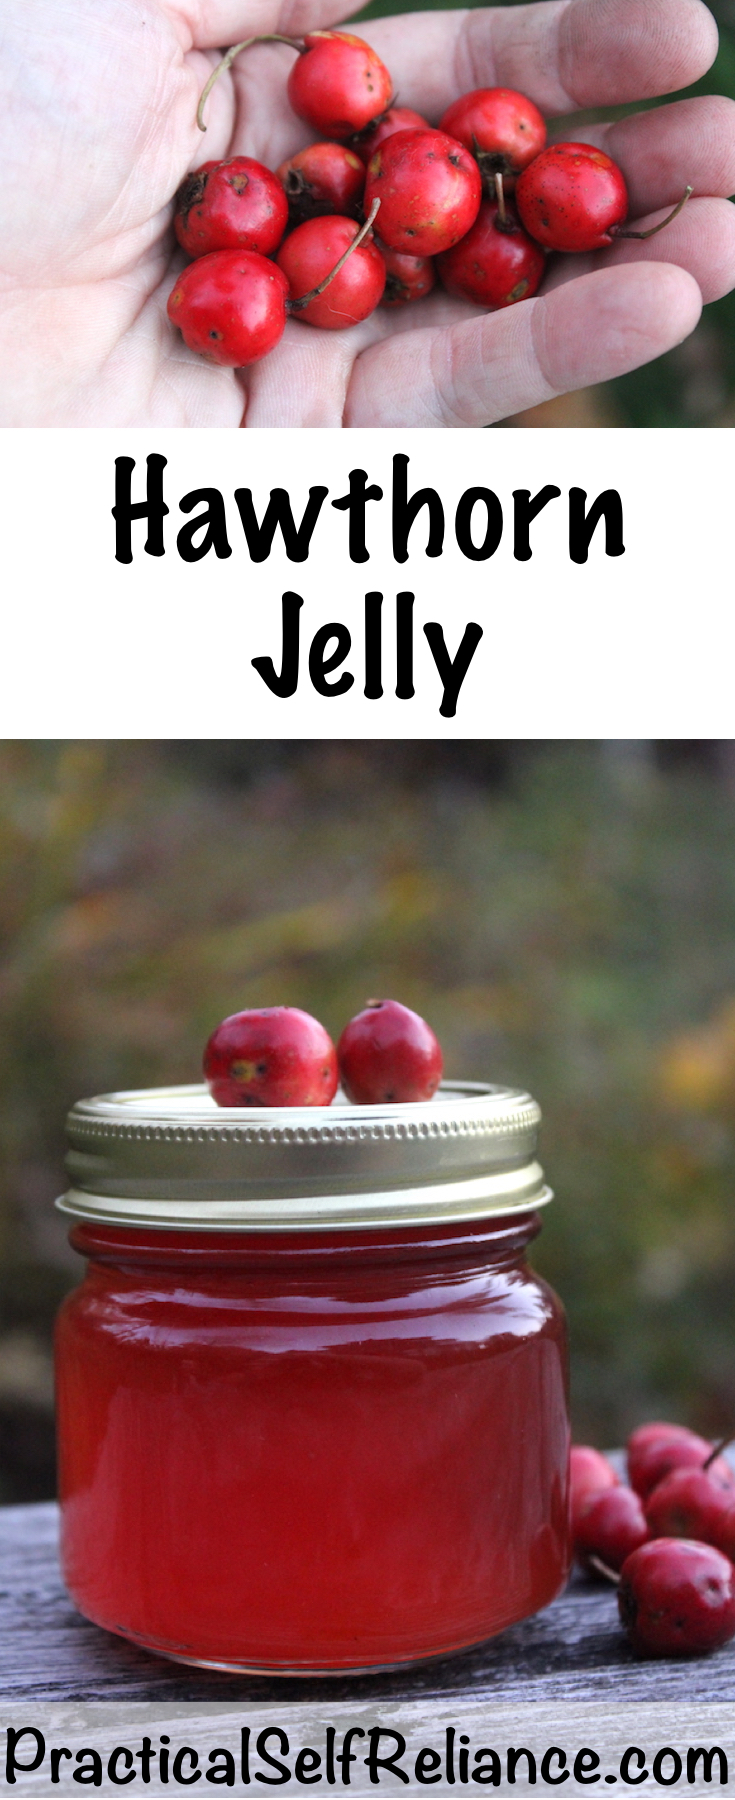 Hawthorn Jelly Recipe for Canning